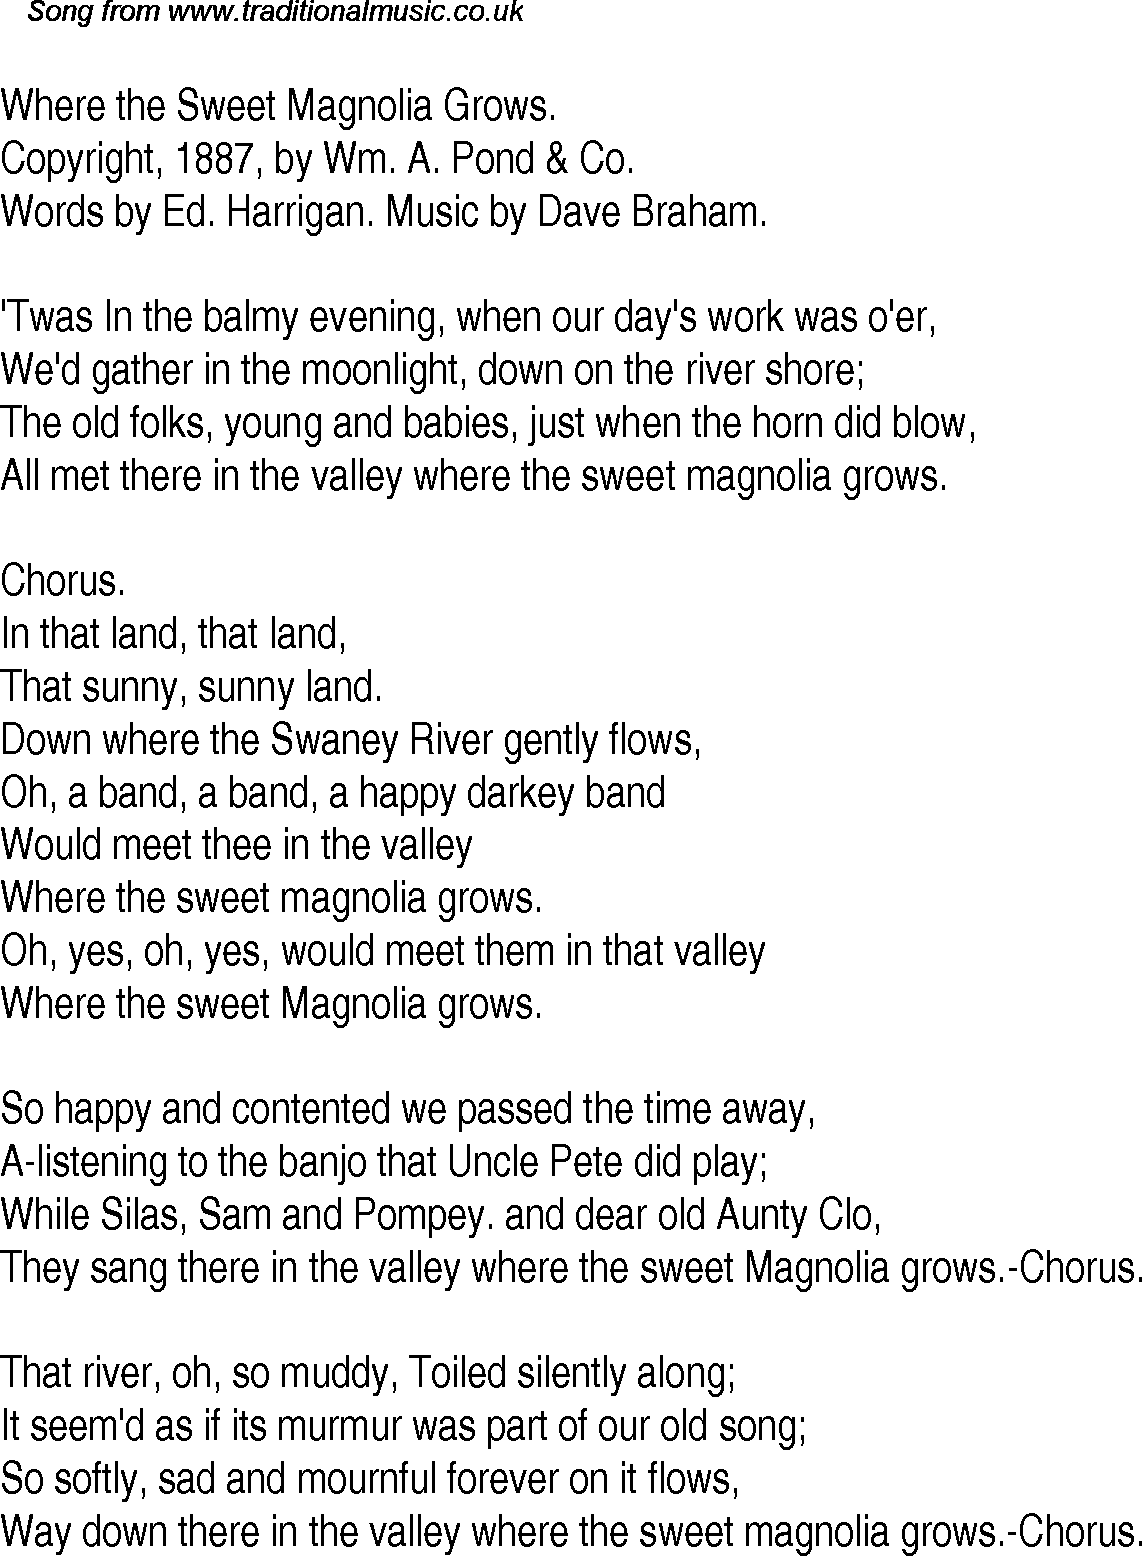 We are forever young lyrics